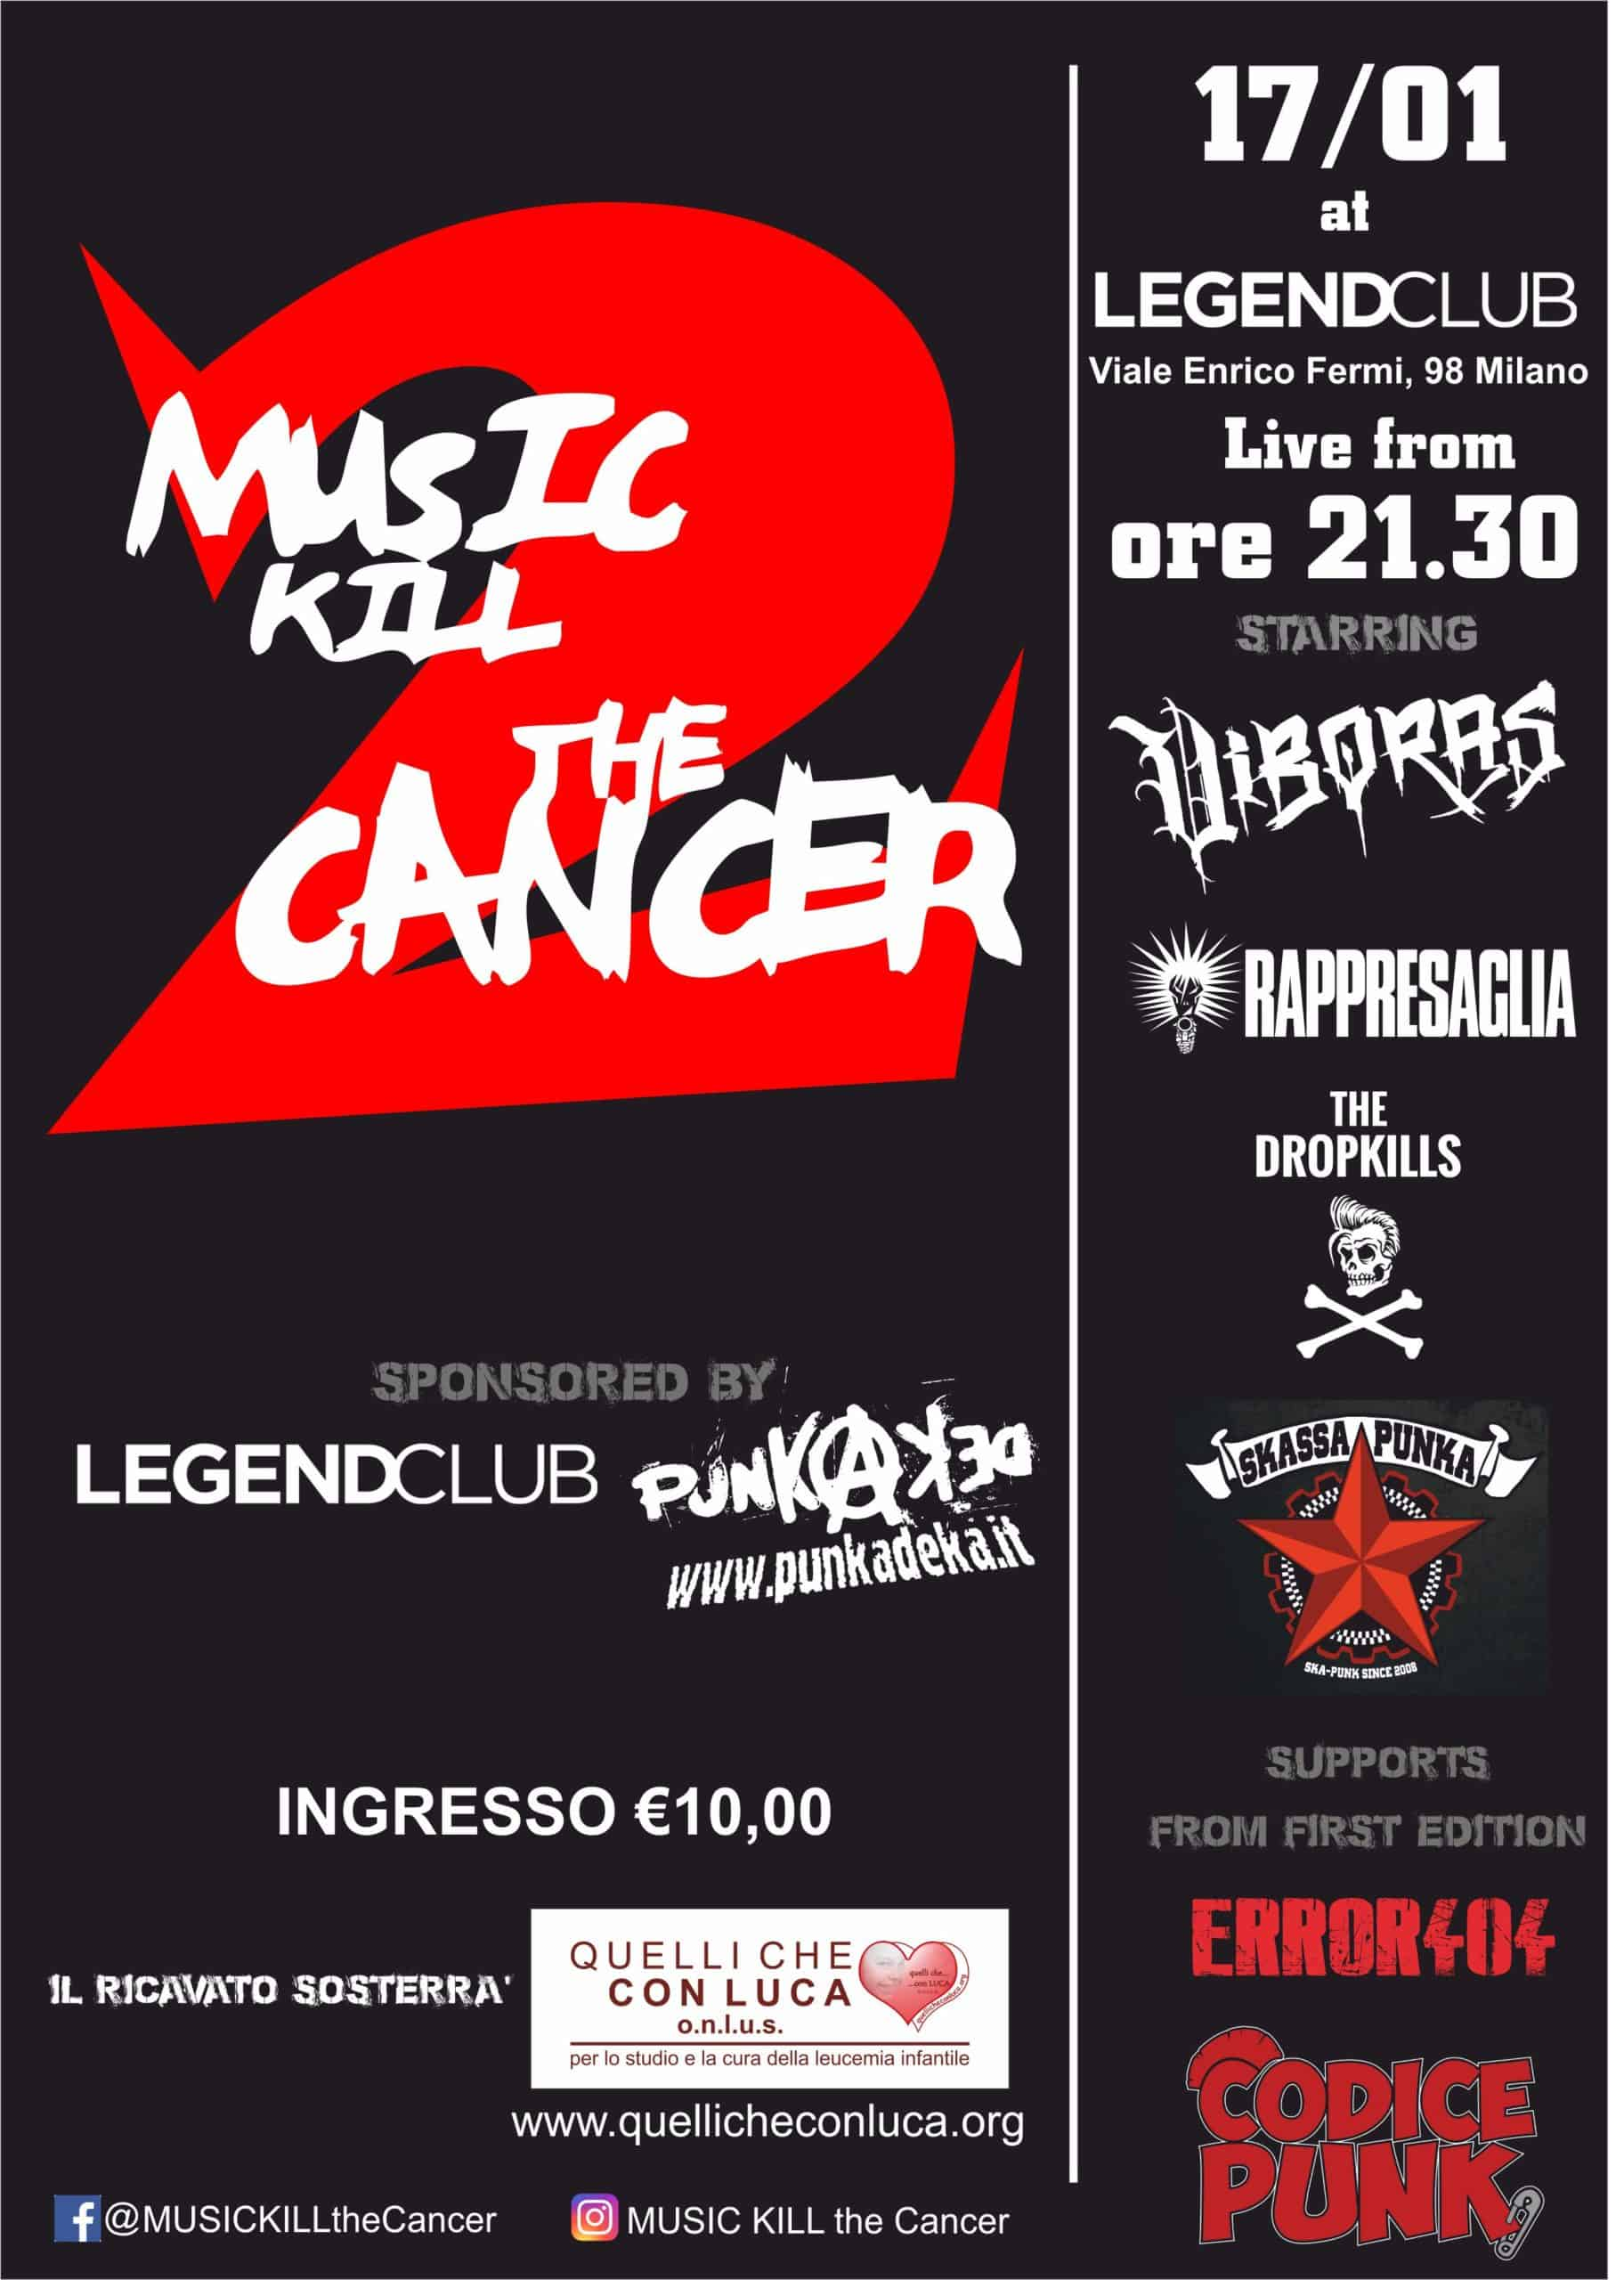 MUSIC KILL the Cancer